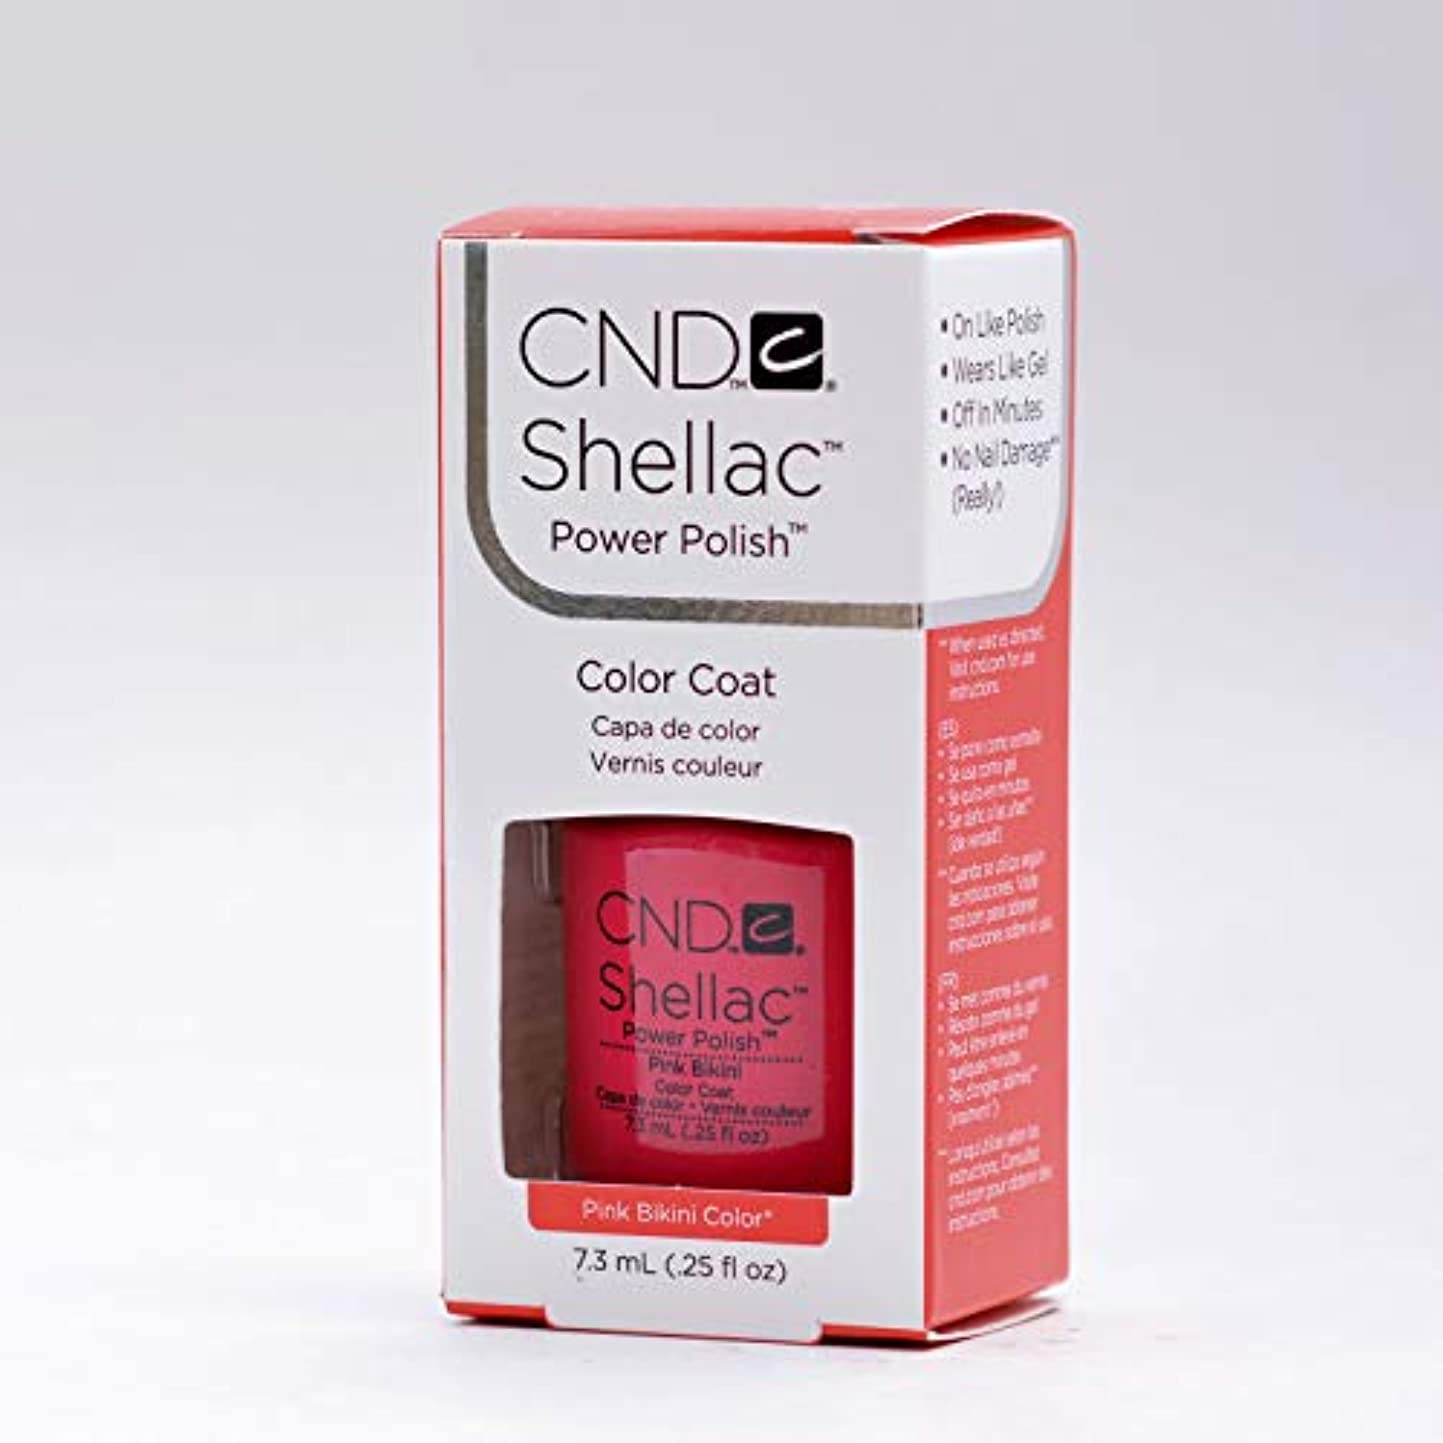 シニス寄稿者精通した【CND 】Shellac?ソークオフジェル? Pink Bikini(Summer Splash Collection ) 7.3ml[CND-09944]